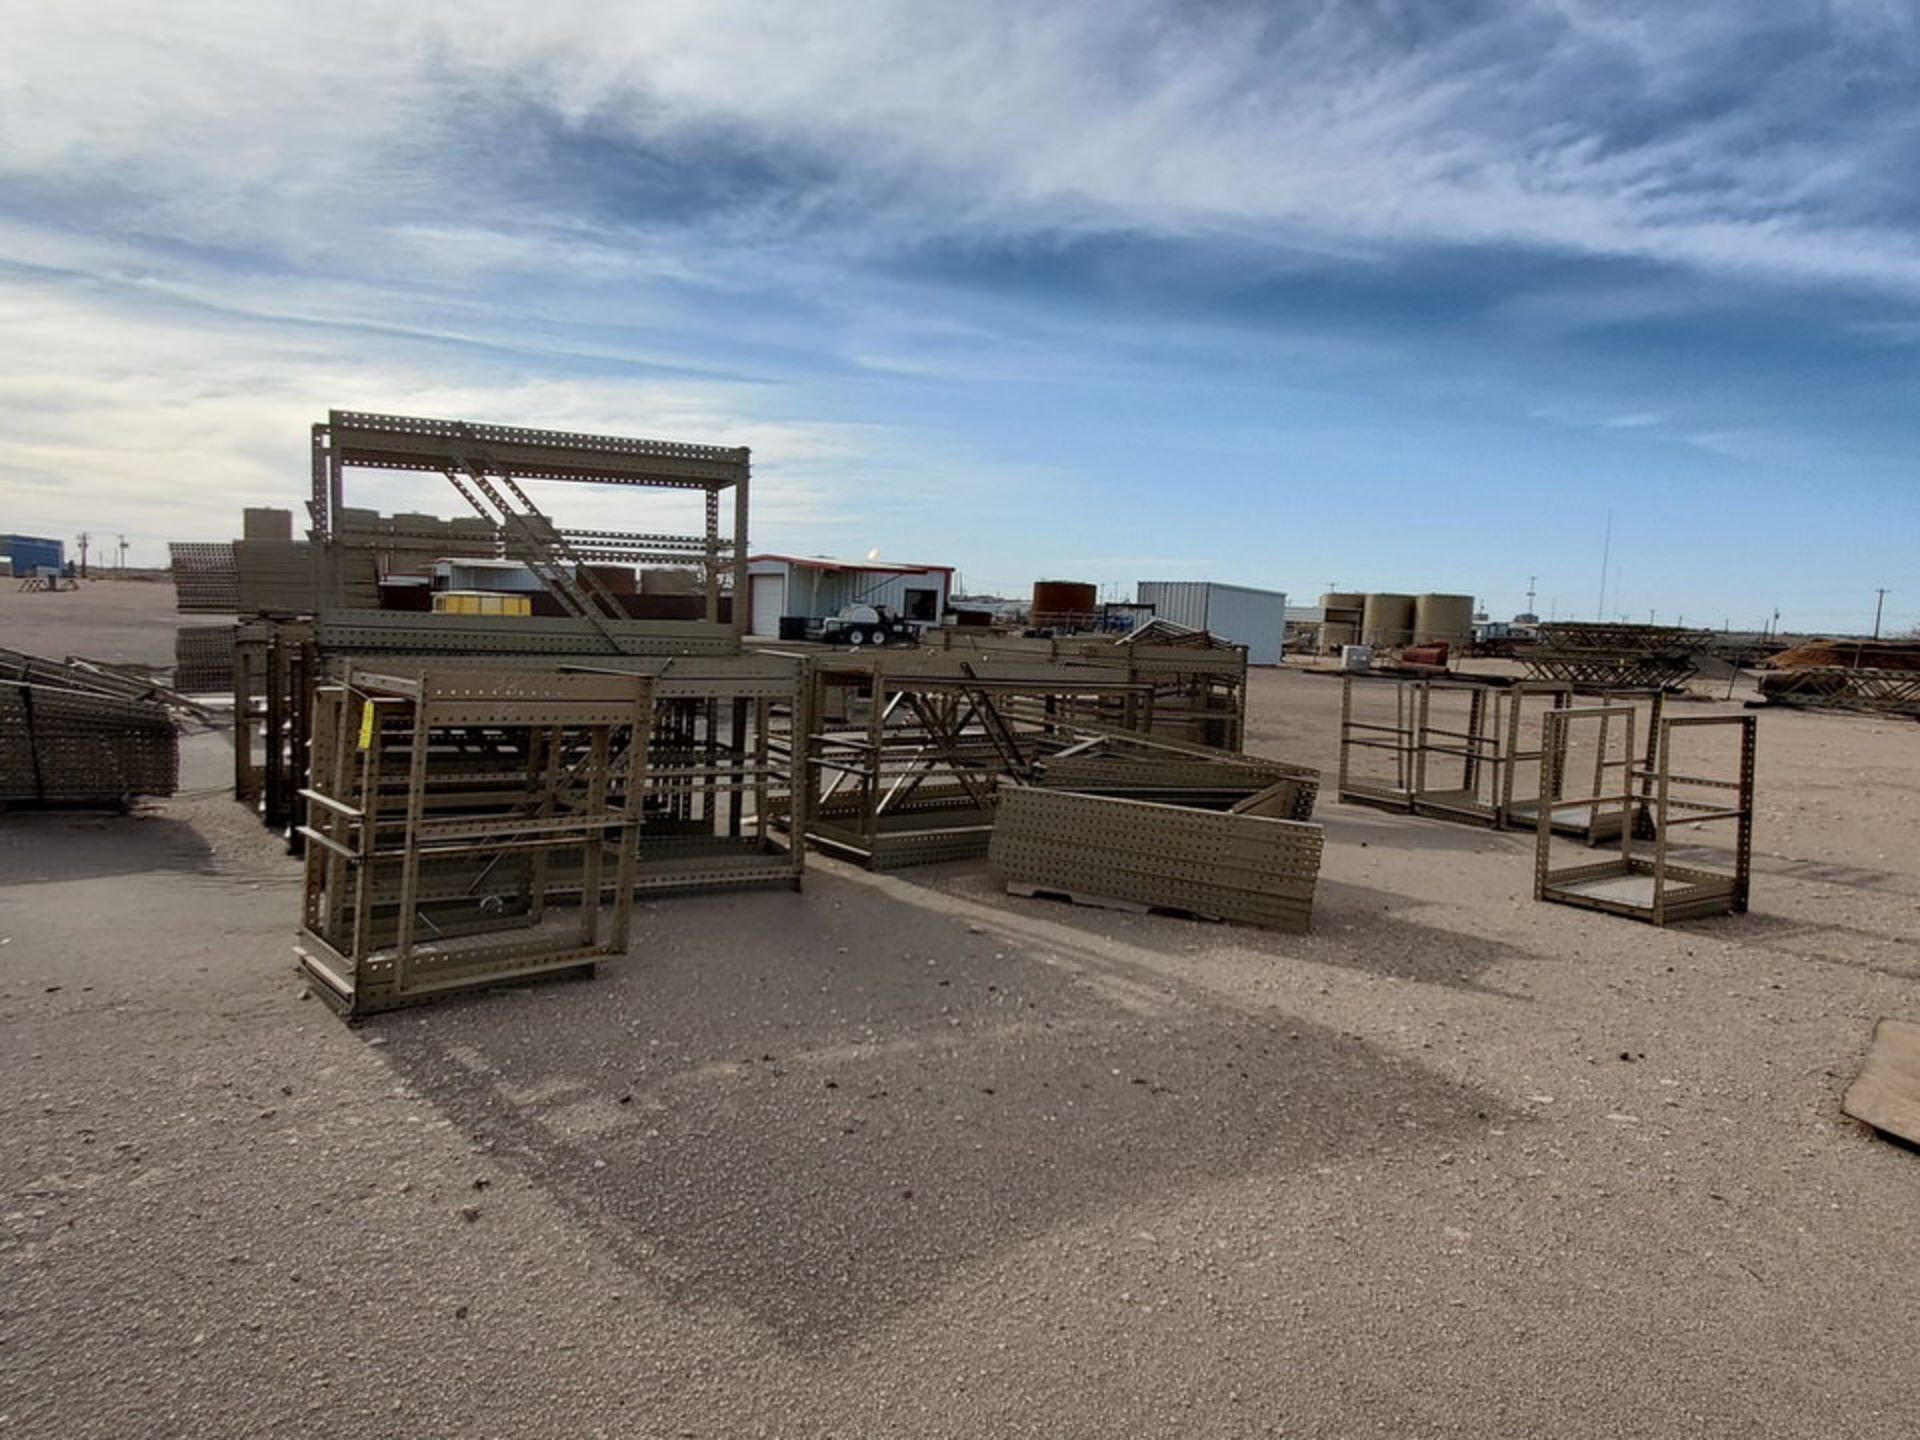 Disassembled Catwalk Sections - Image 20 of 20